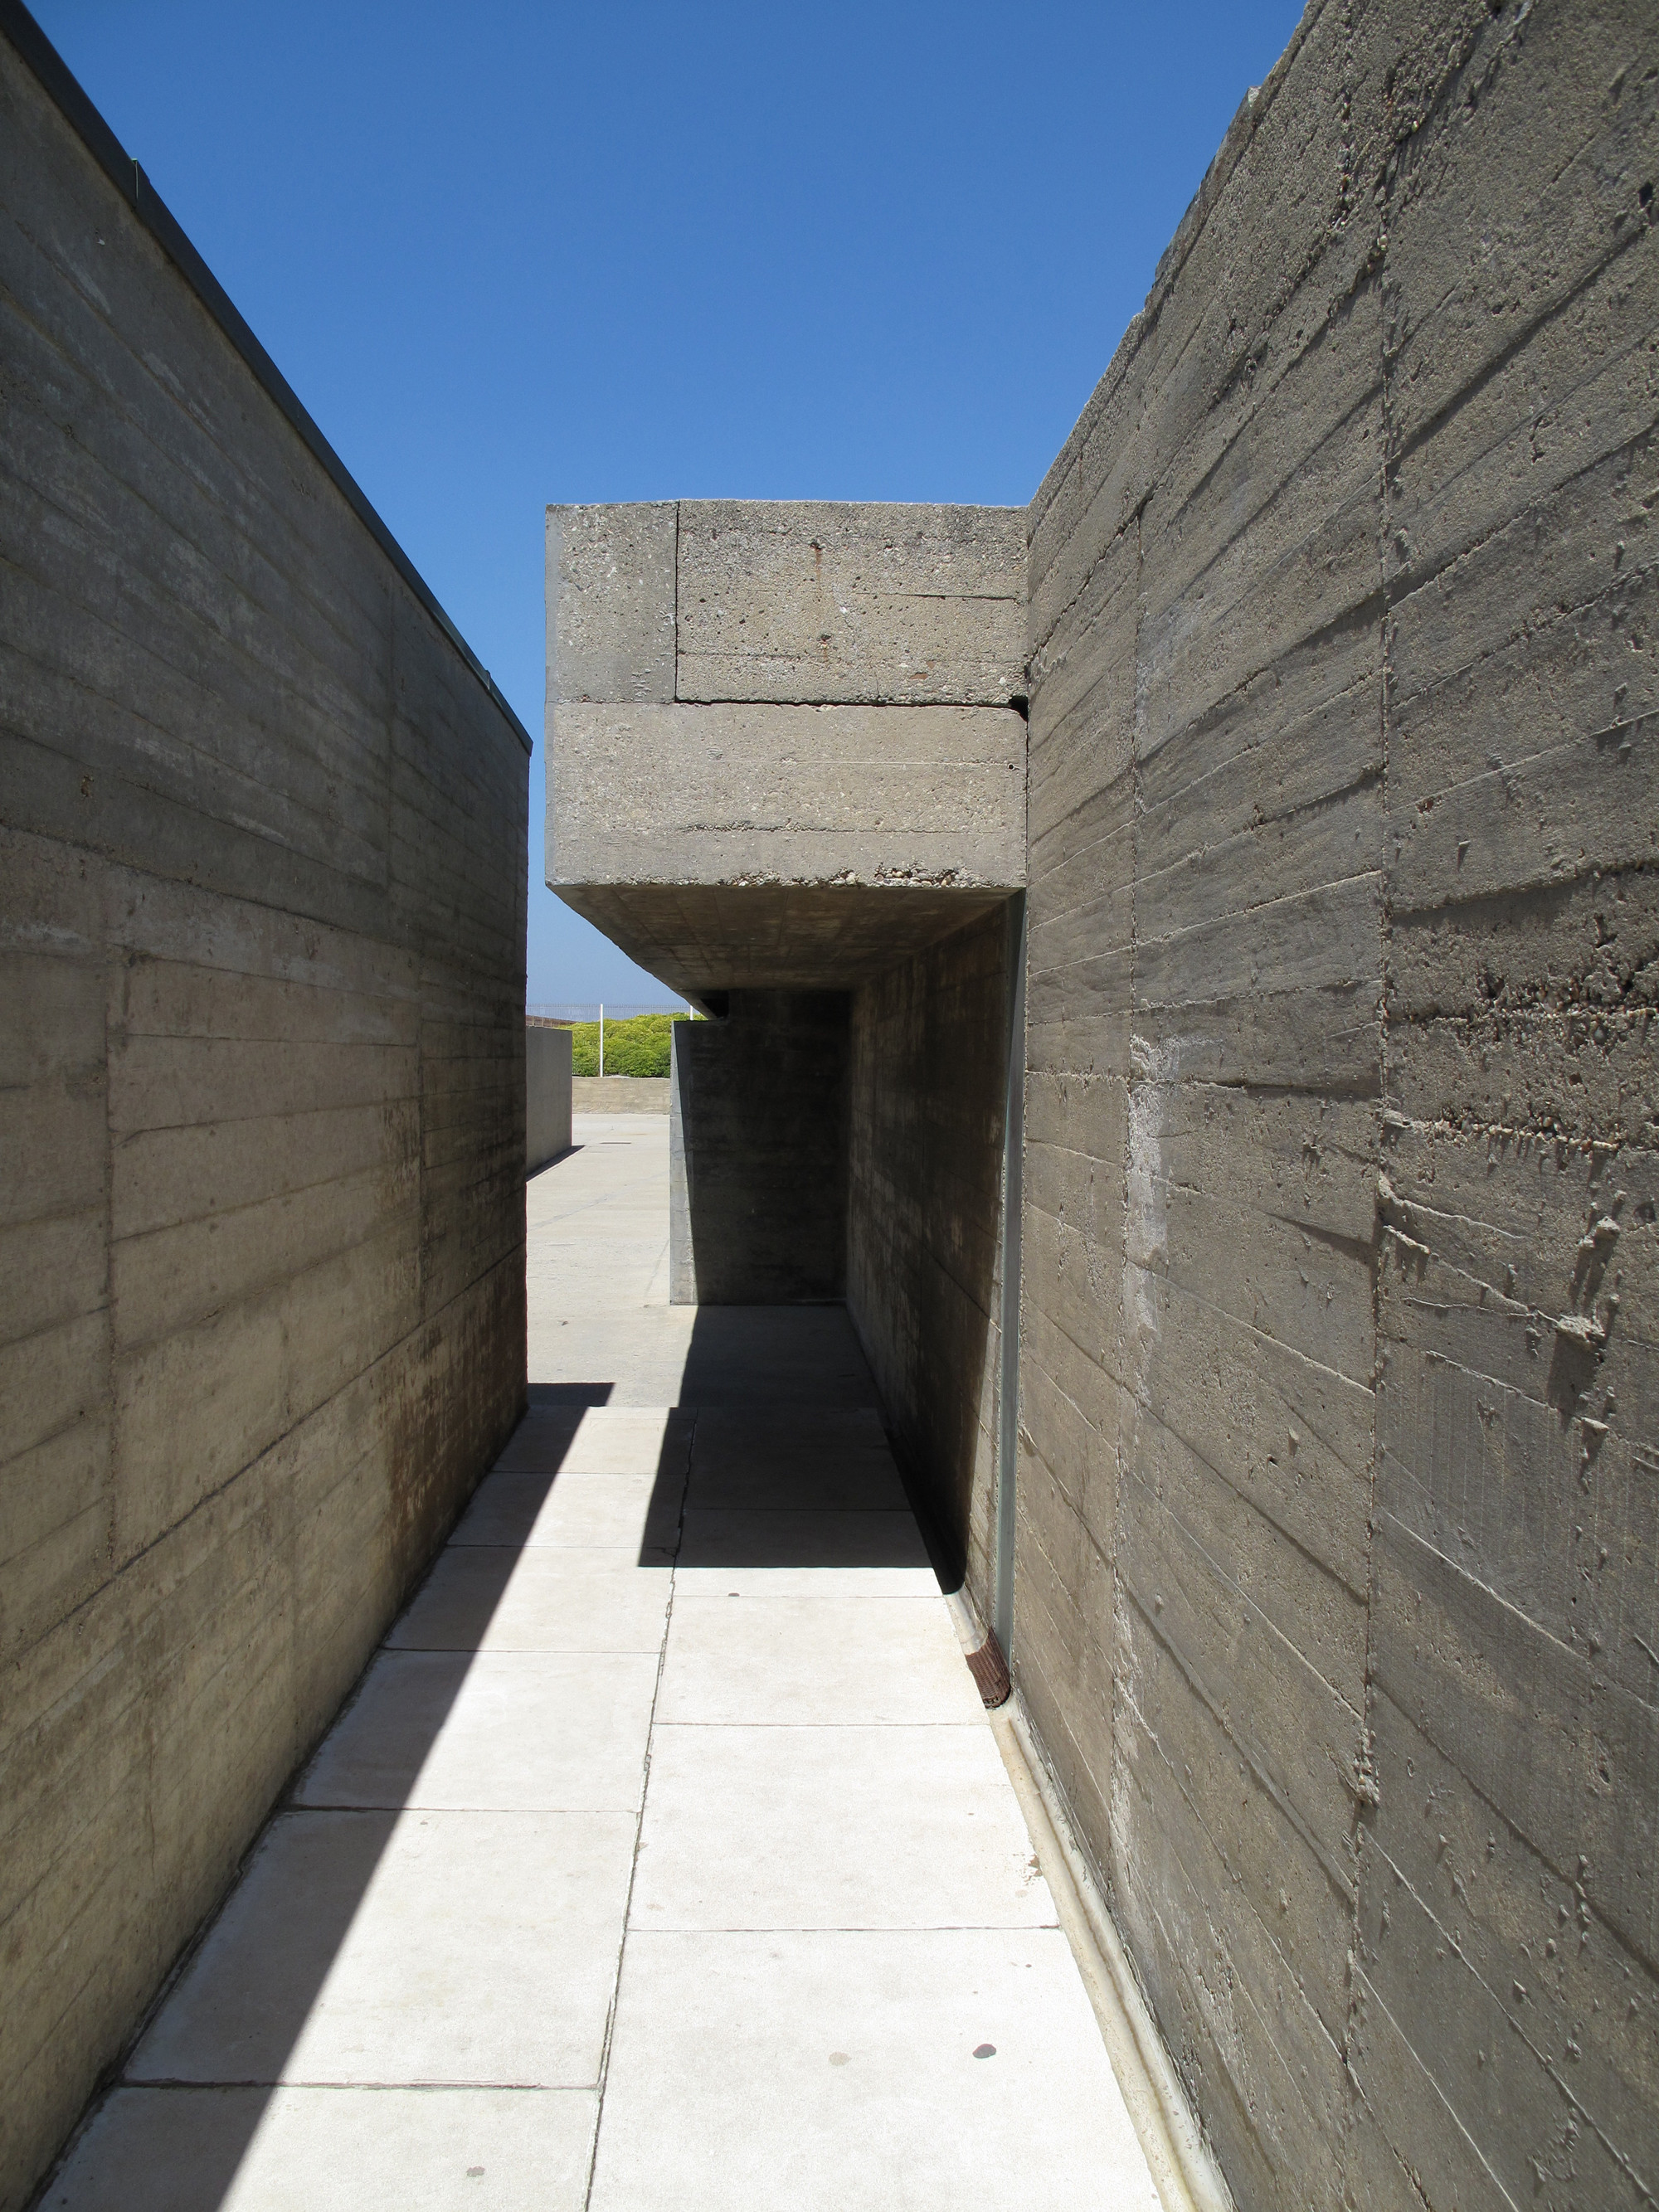 Gallery of ad classics le a swimming pools lvaro siza vieira 7 for Alvaro siza leca swimming pools